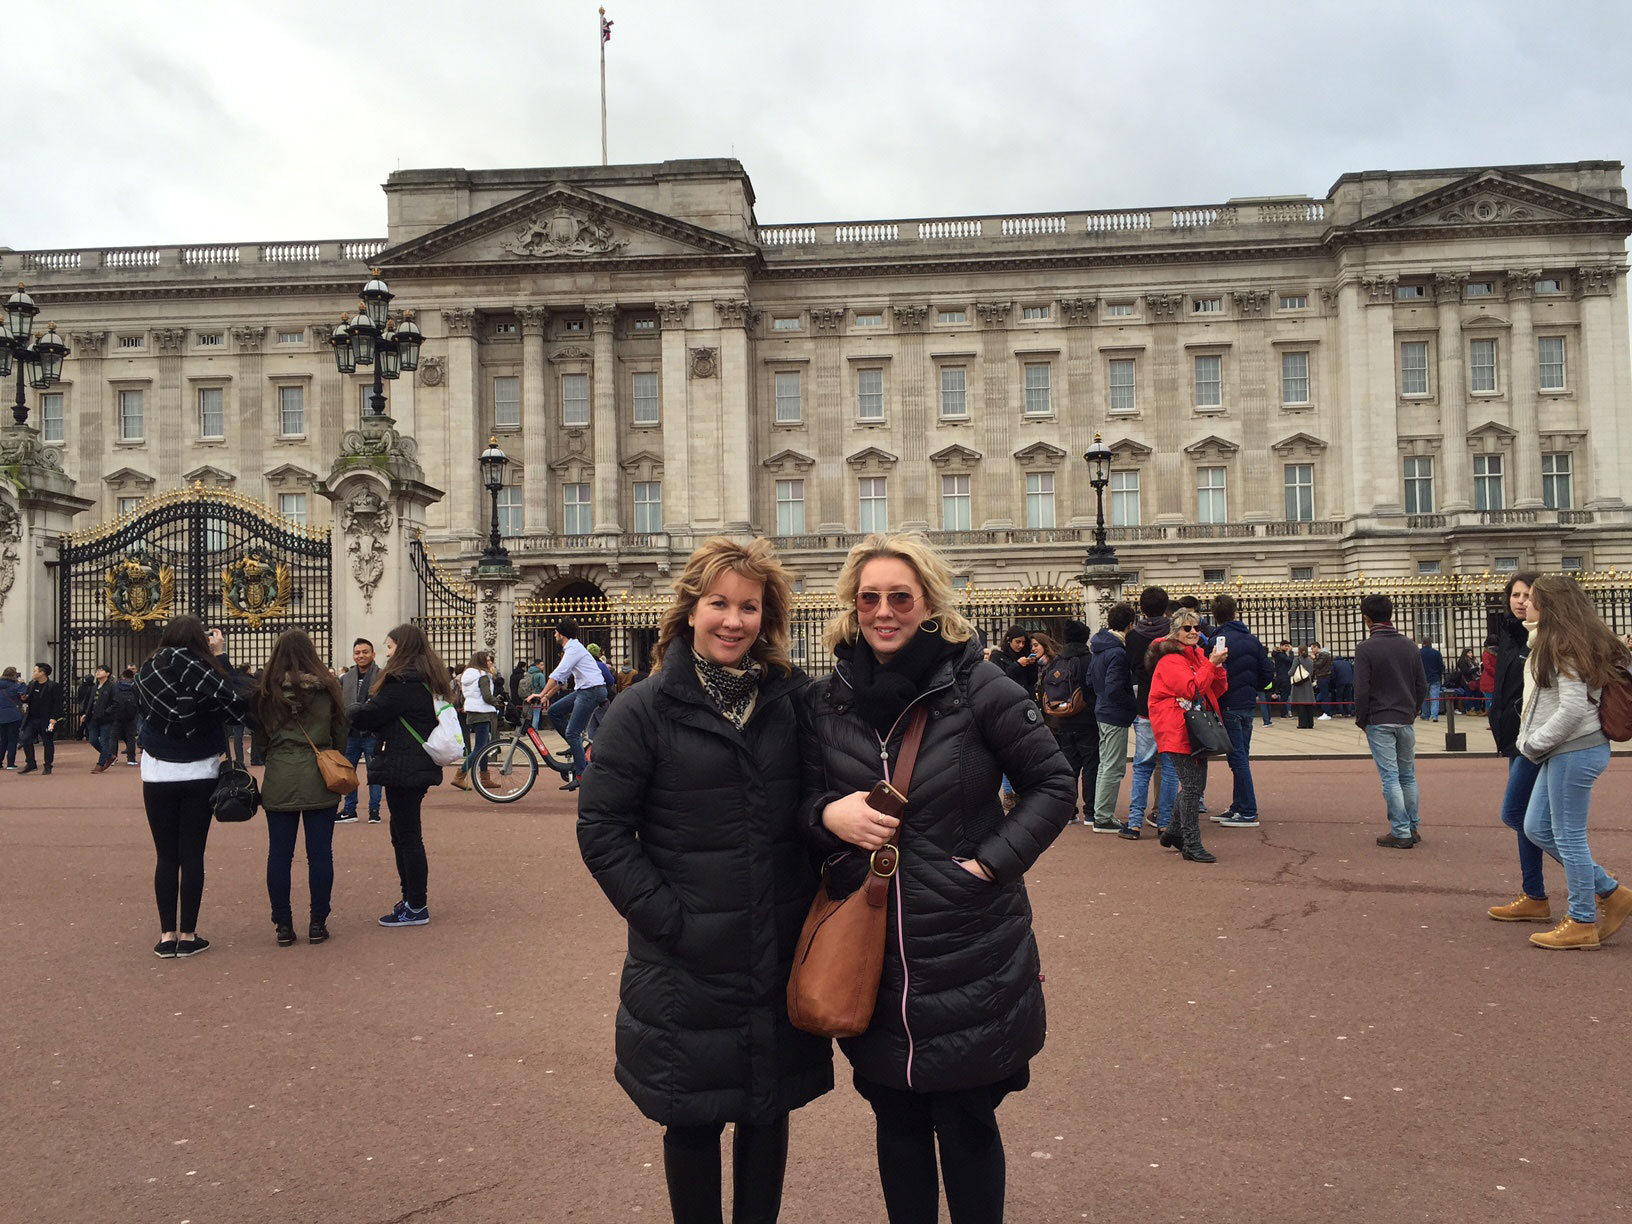 Tamra and Cindy in London